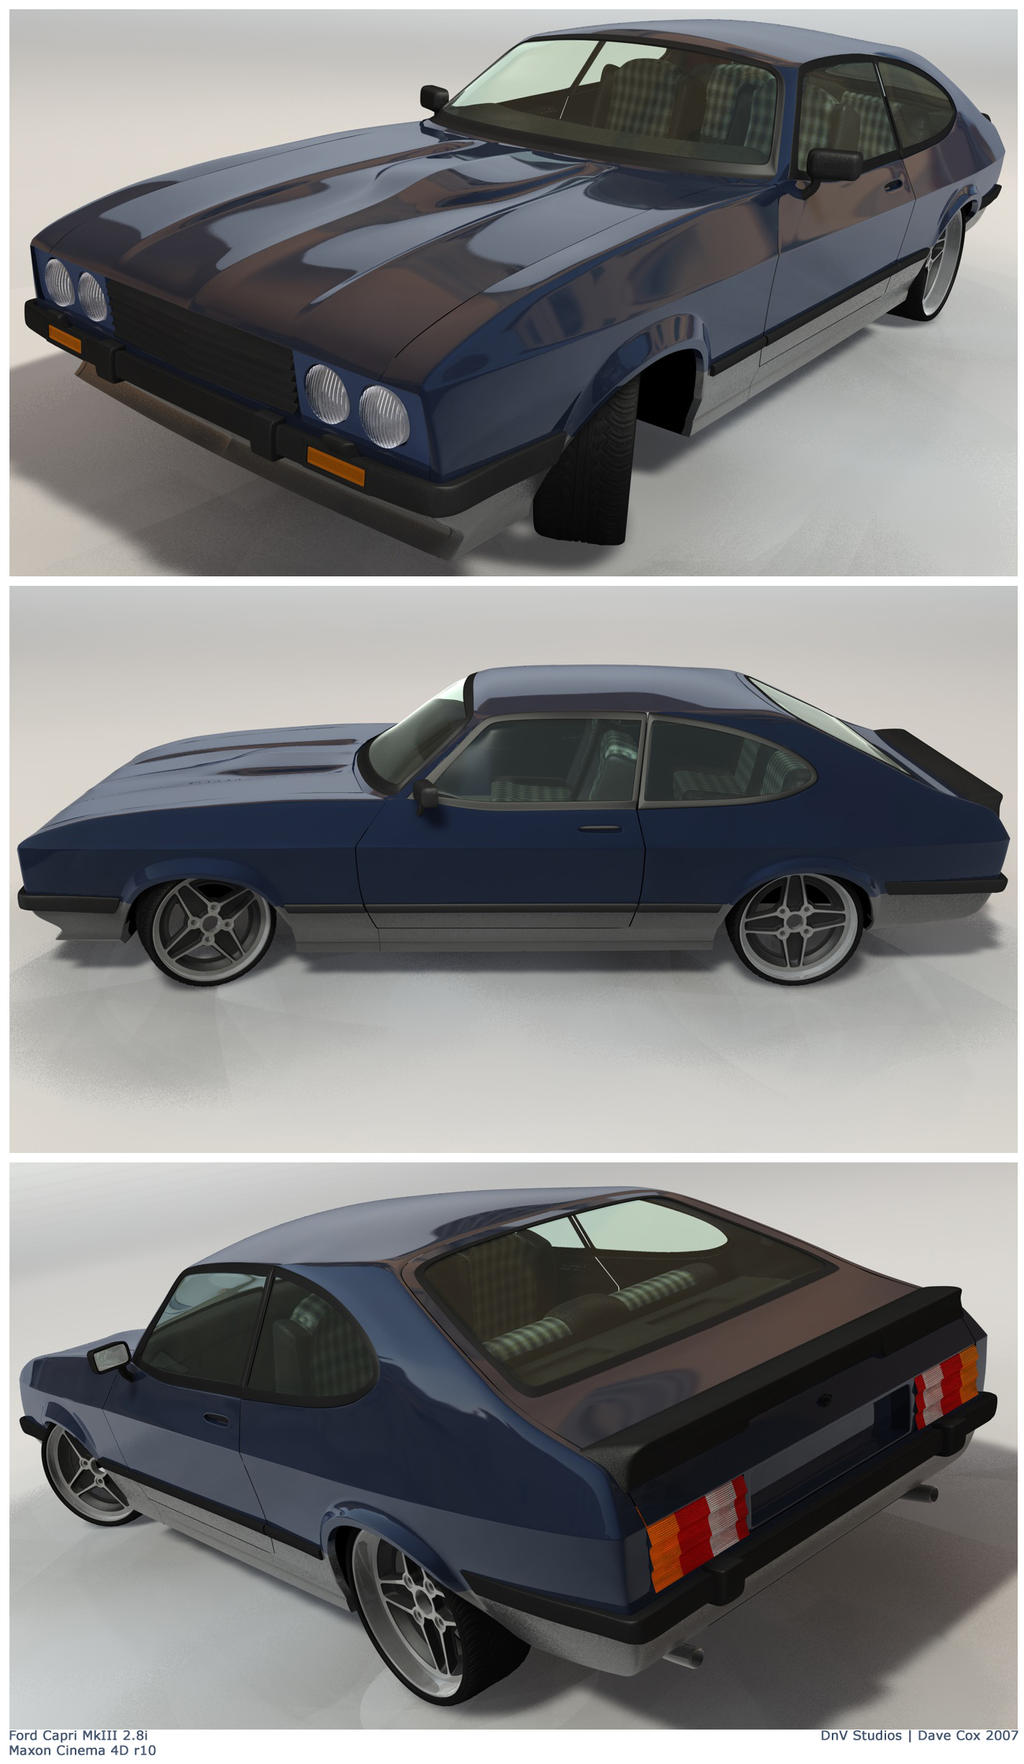 Ford Capri MkIII 2.8i in Blue